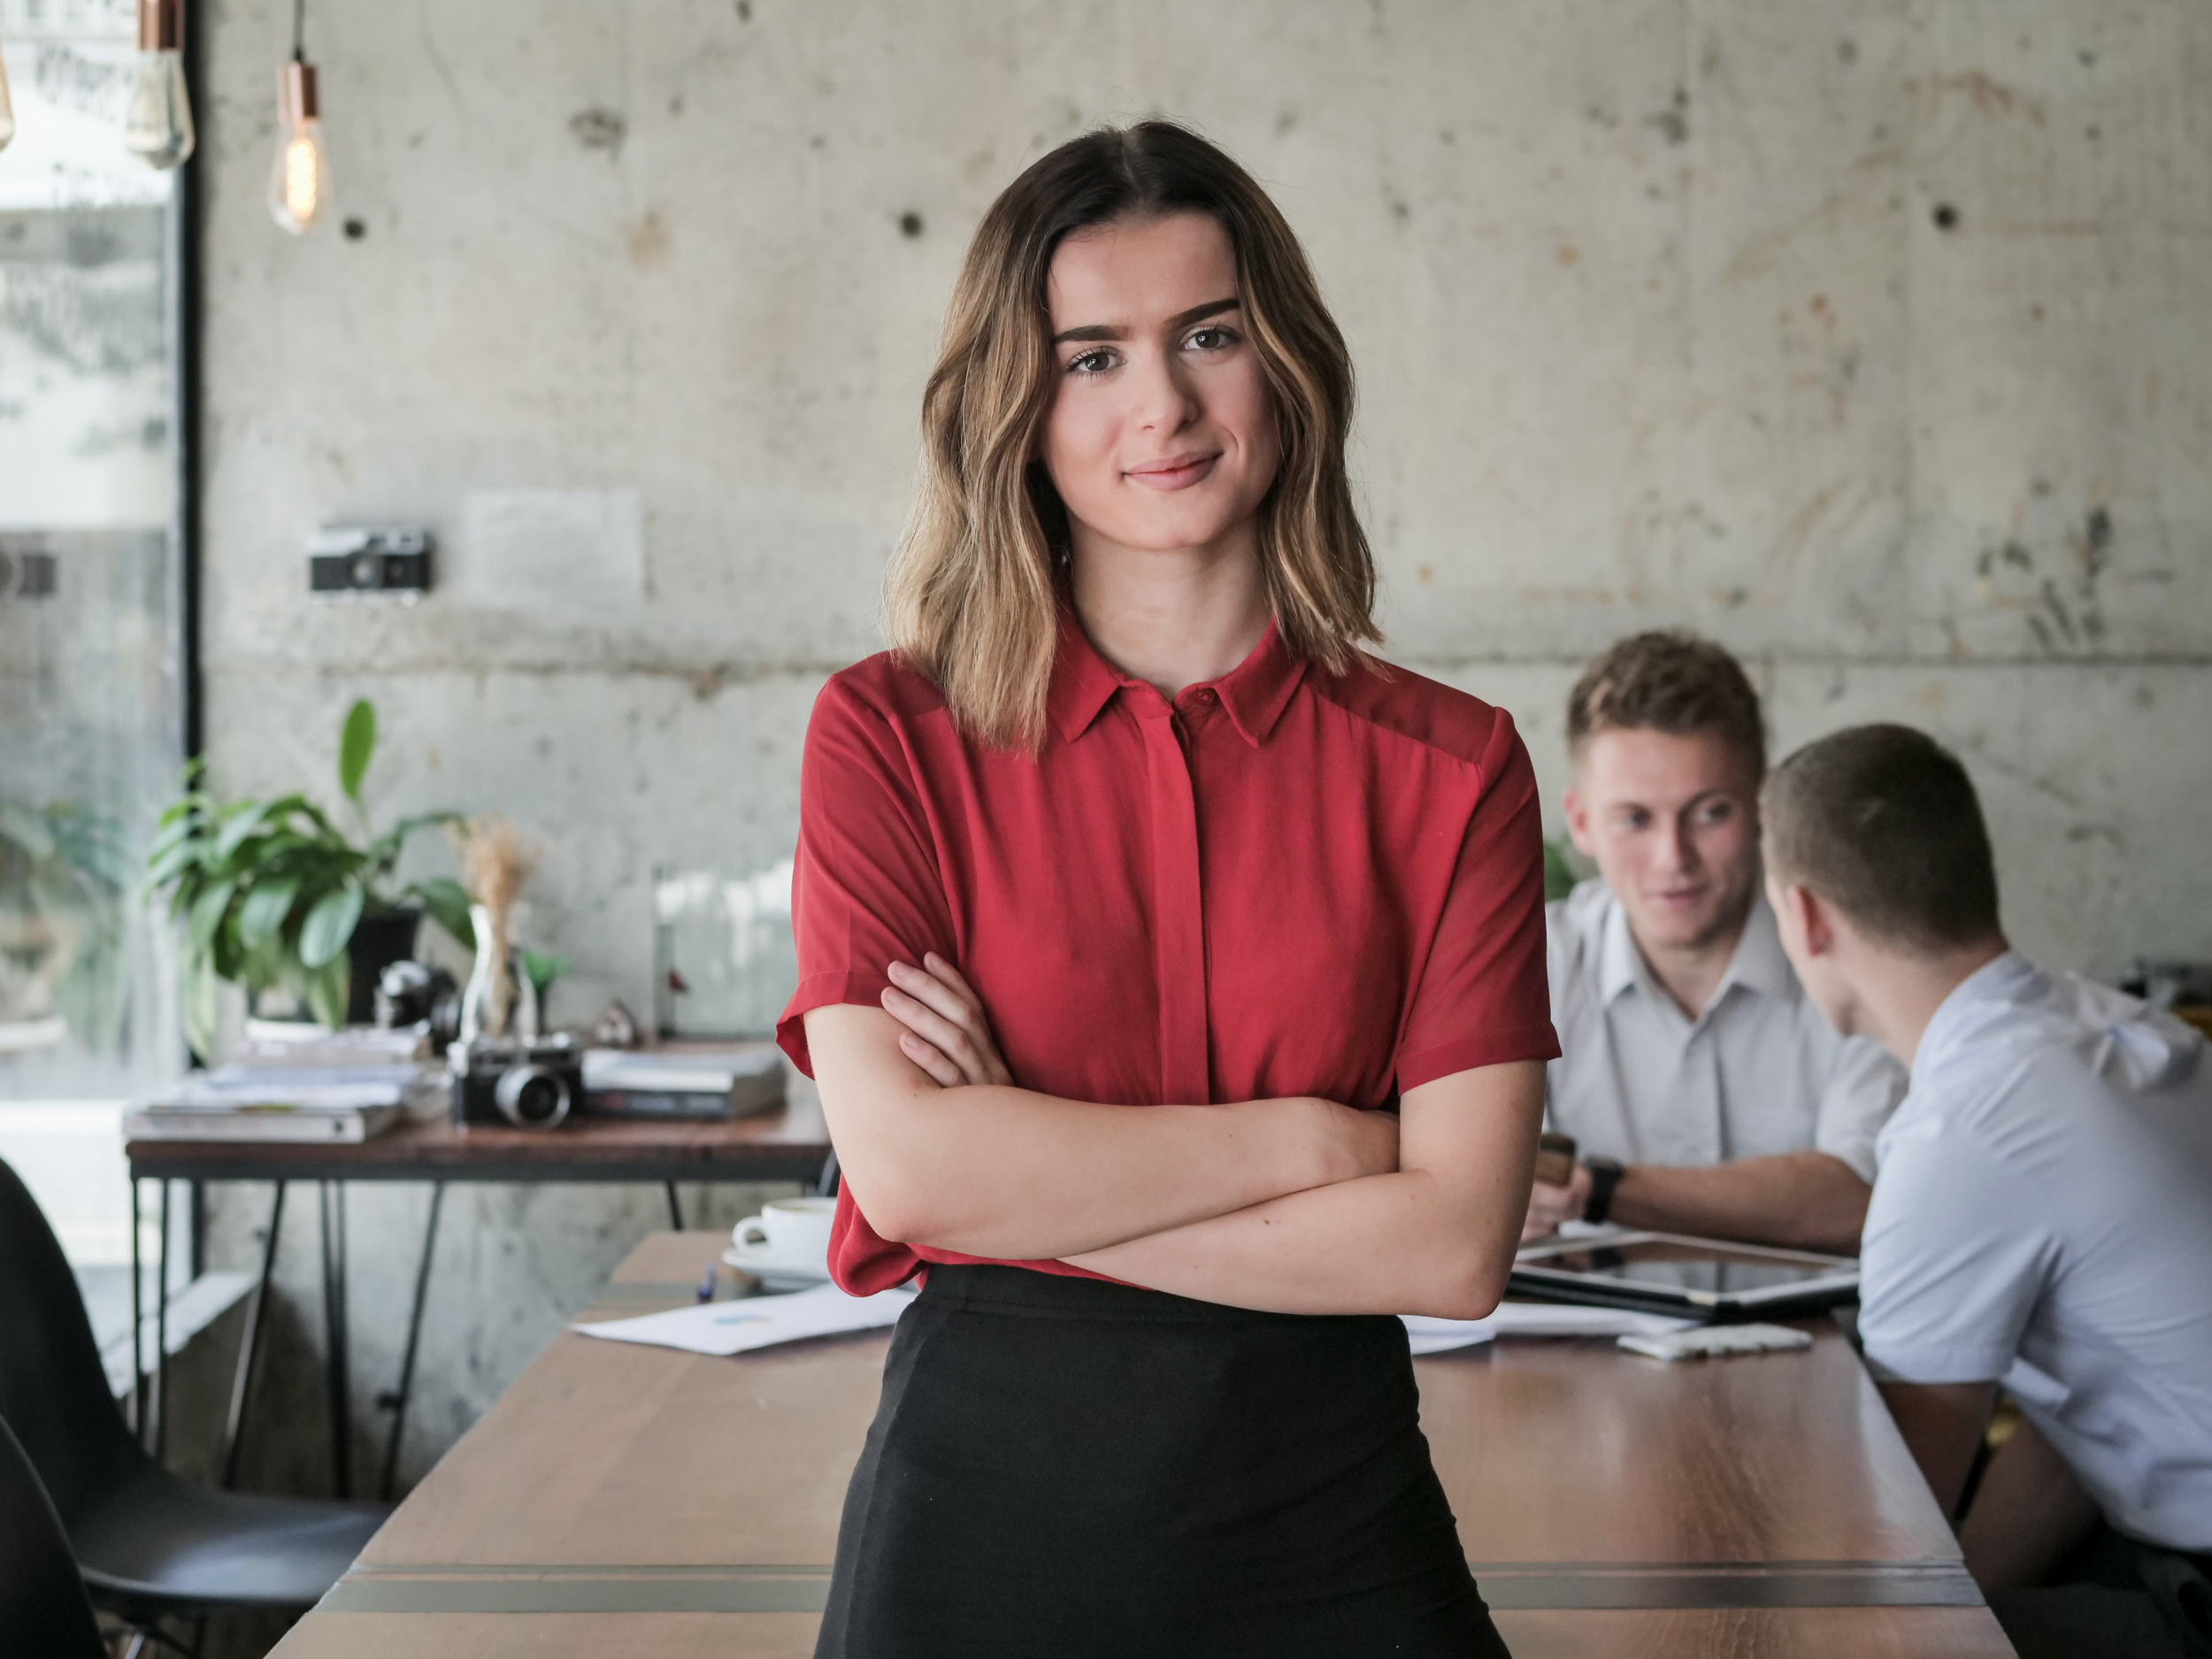 Successful young business woman start up, crossed arm and smiling in workplace